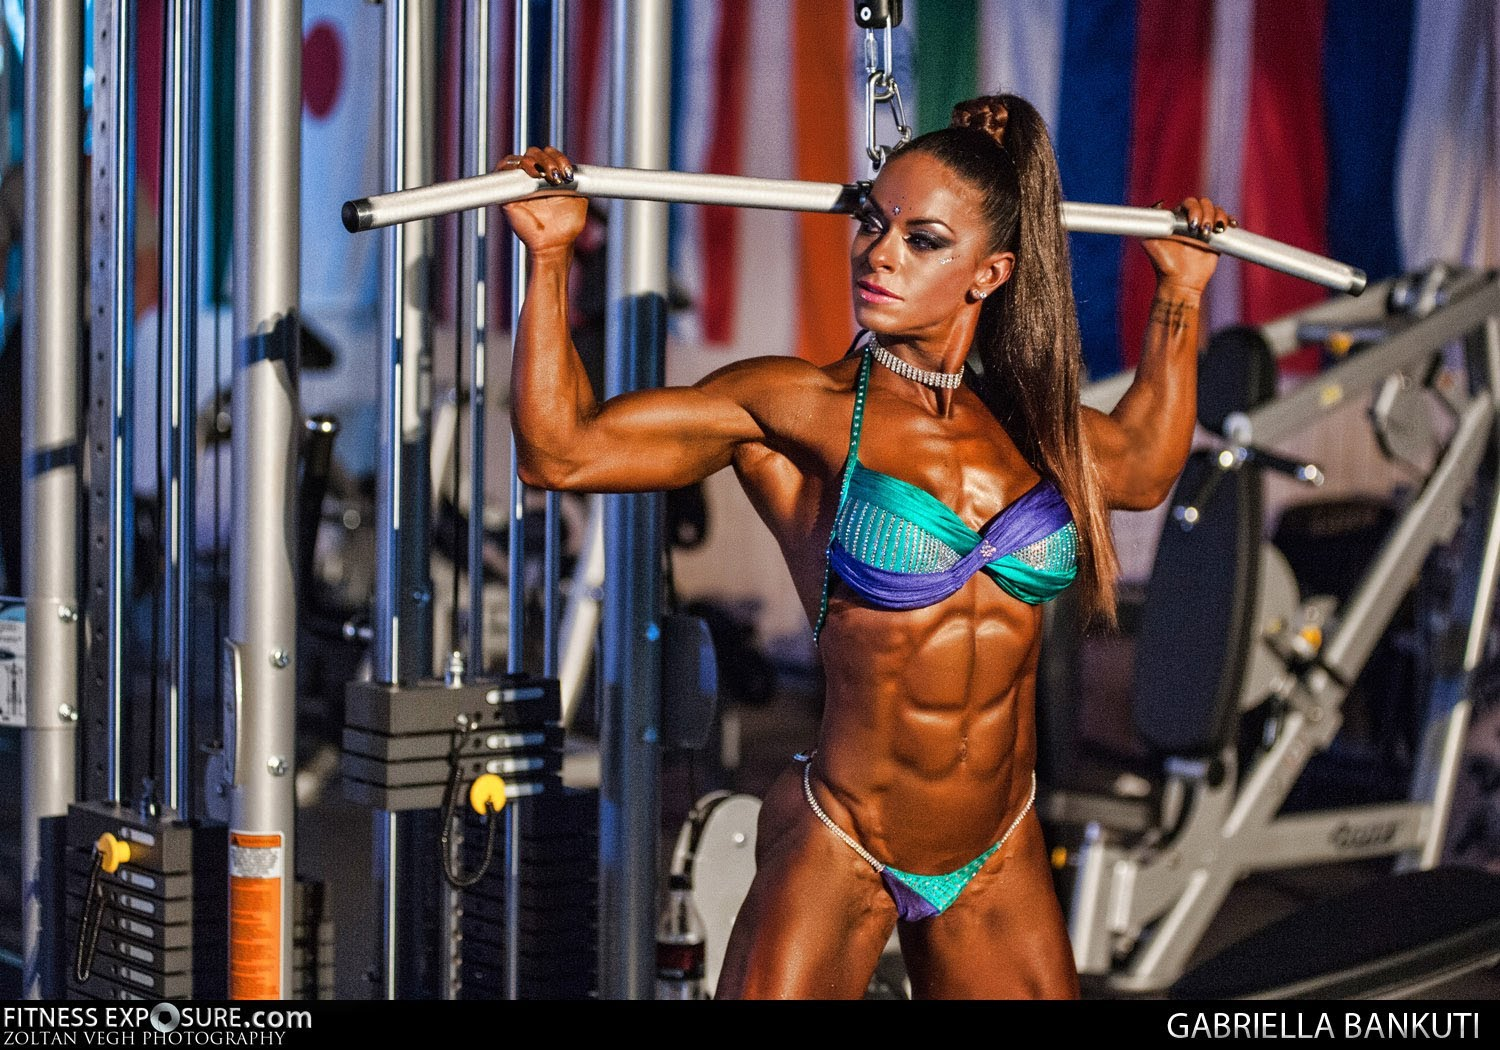 Gabriella Bankuti – World Champion Photoshooting